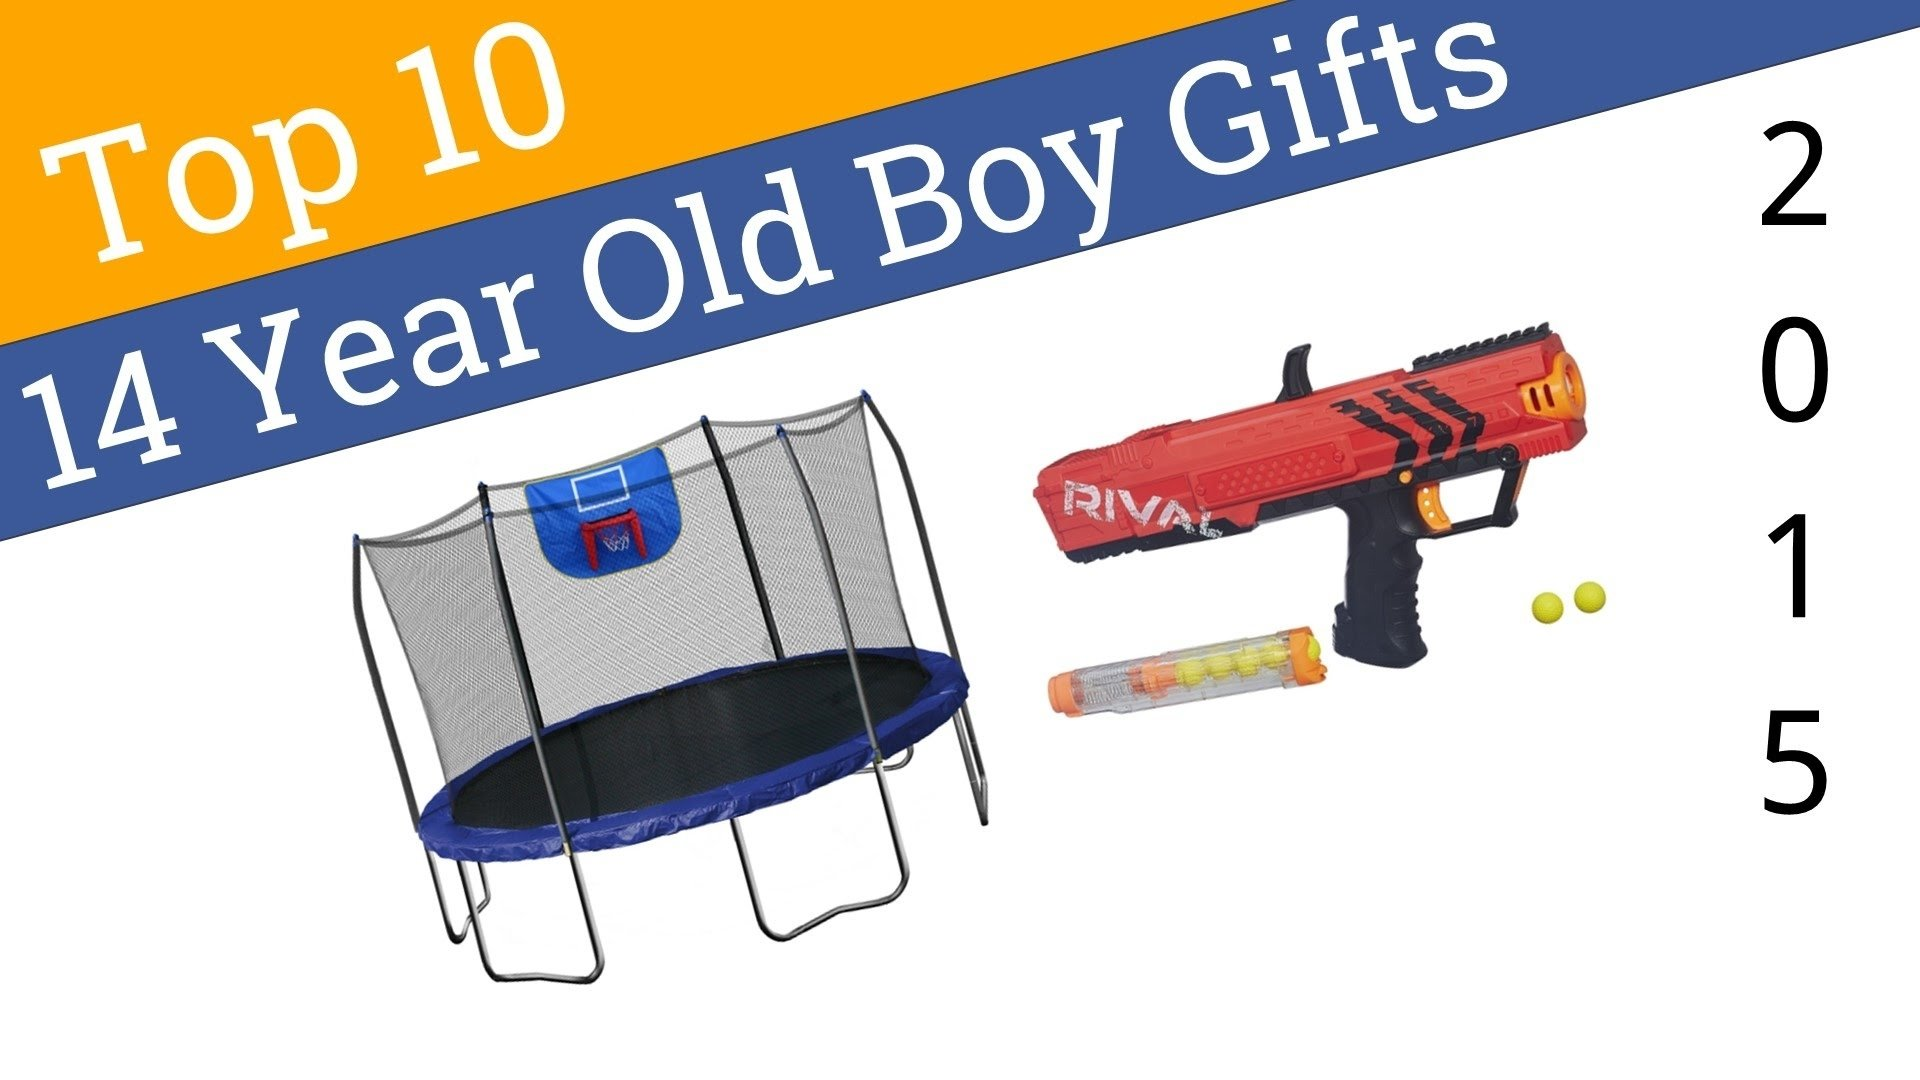 10 Famous Birthday Gift Ideas For 14 Year Old Boy Best